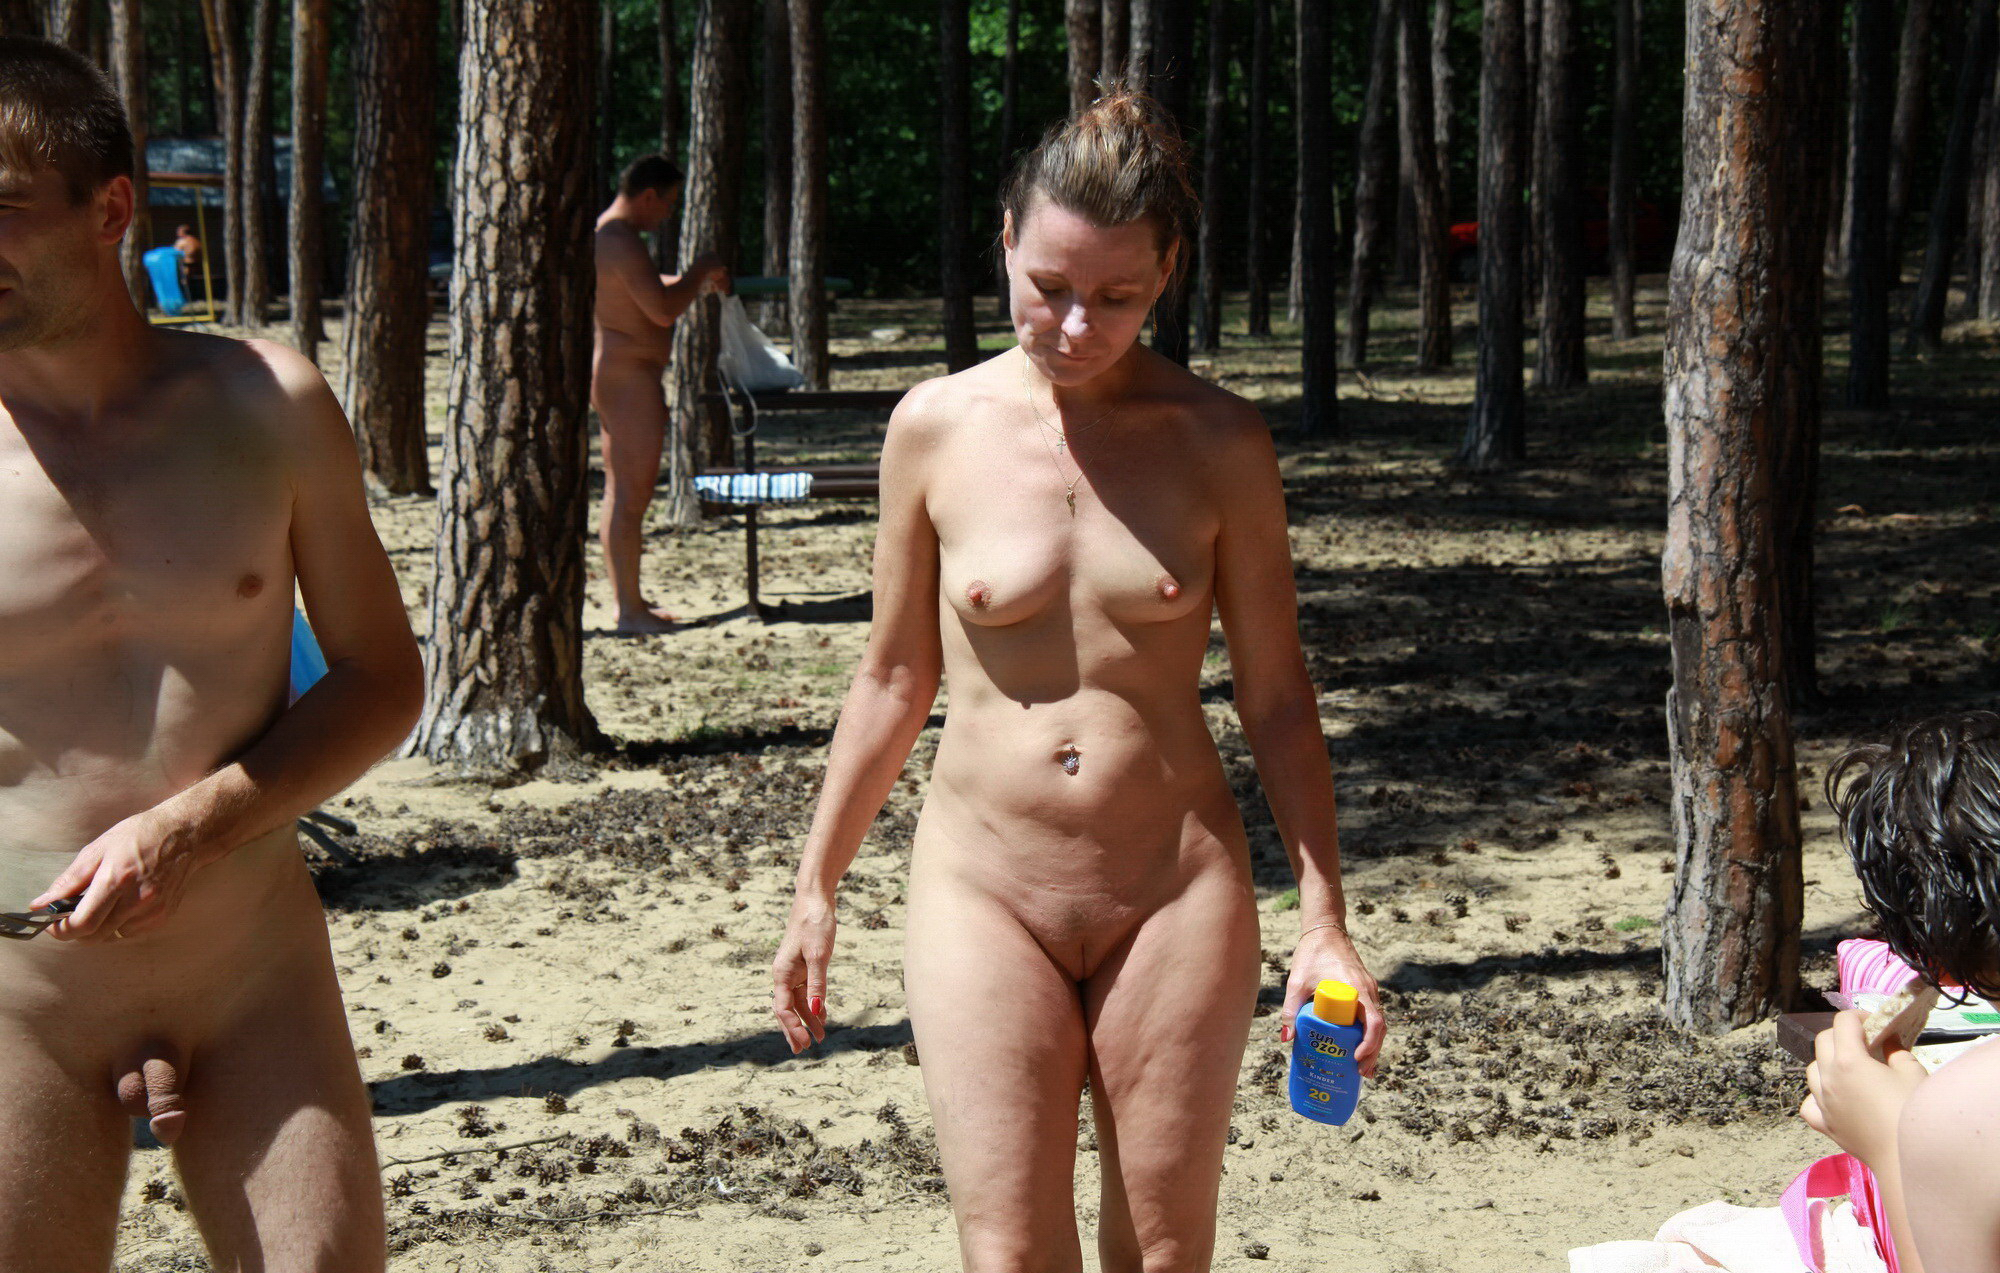 Lunch?? junior girl nudist video bombs